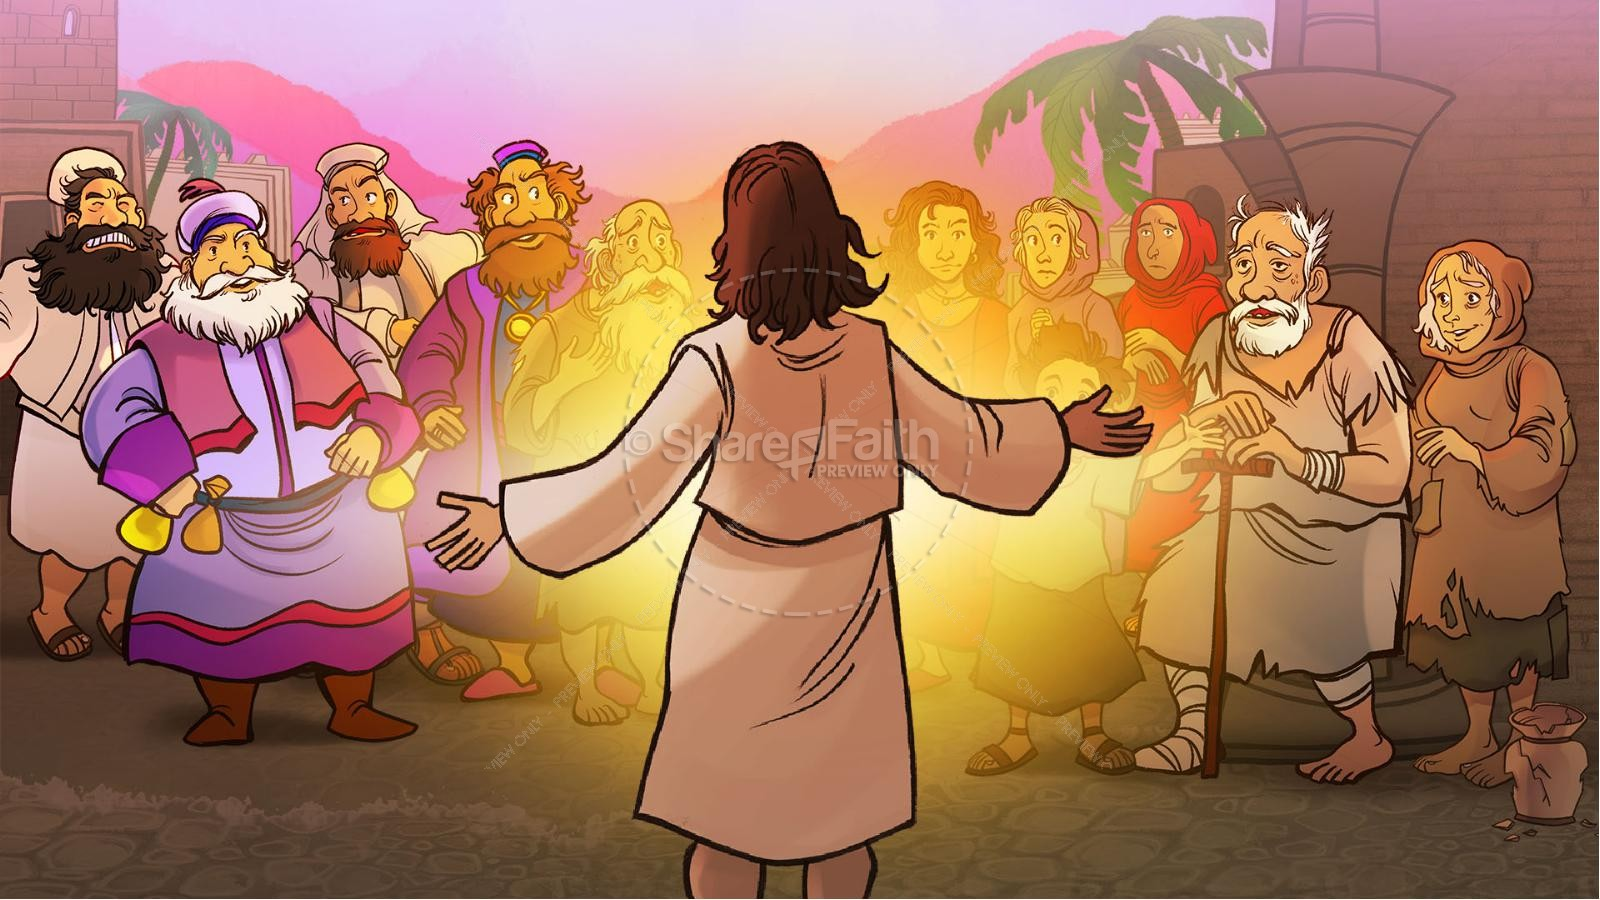 Luke 15 The Parables of the Lost Sheep and Coin Kids Bible Story | slide 2